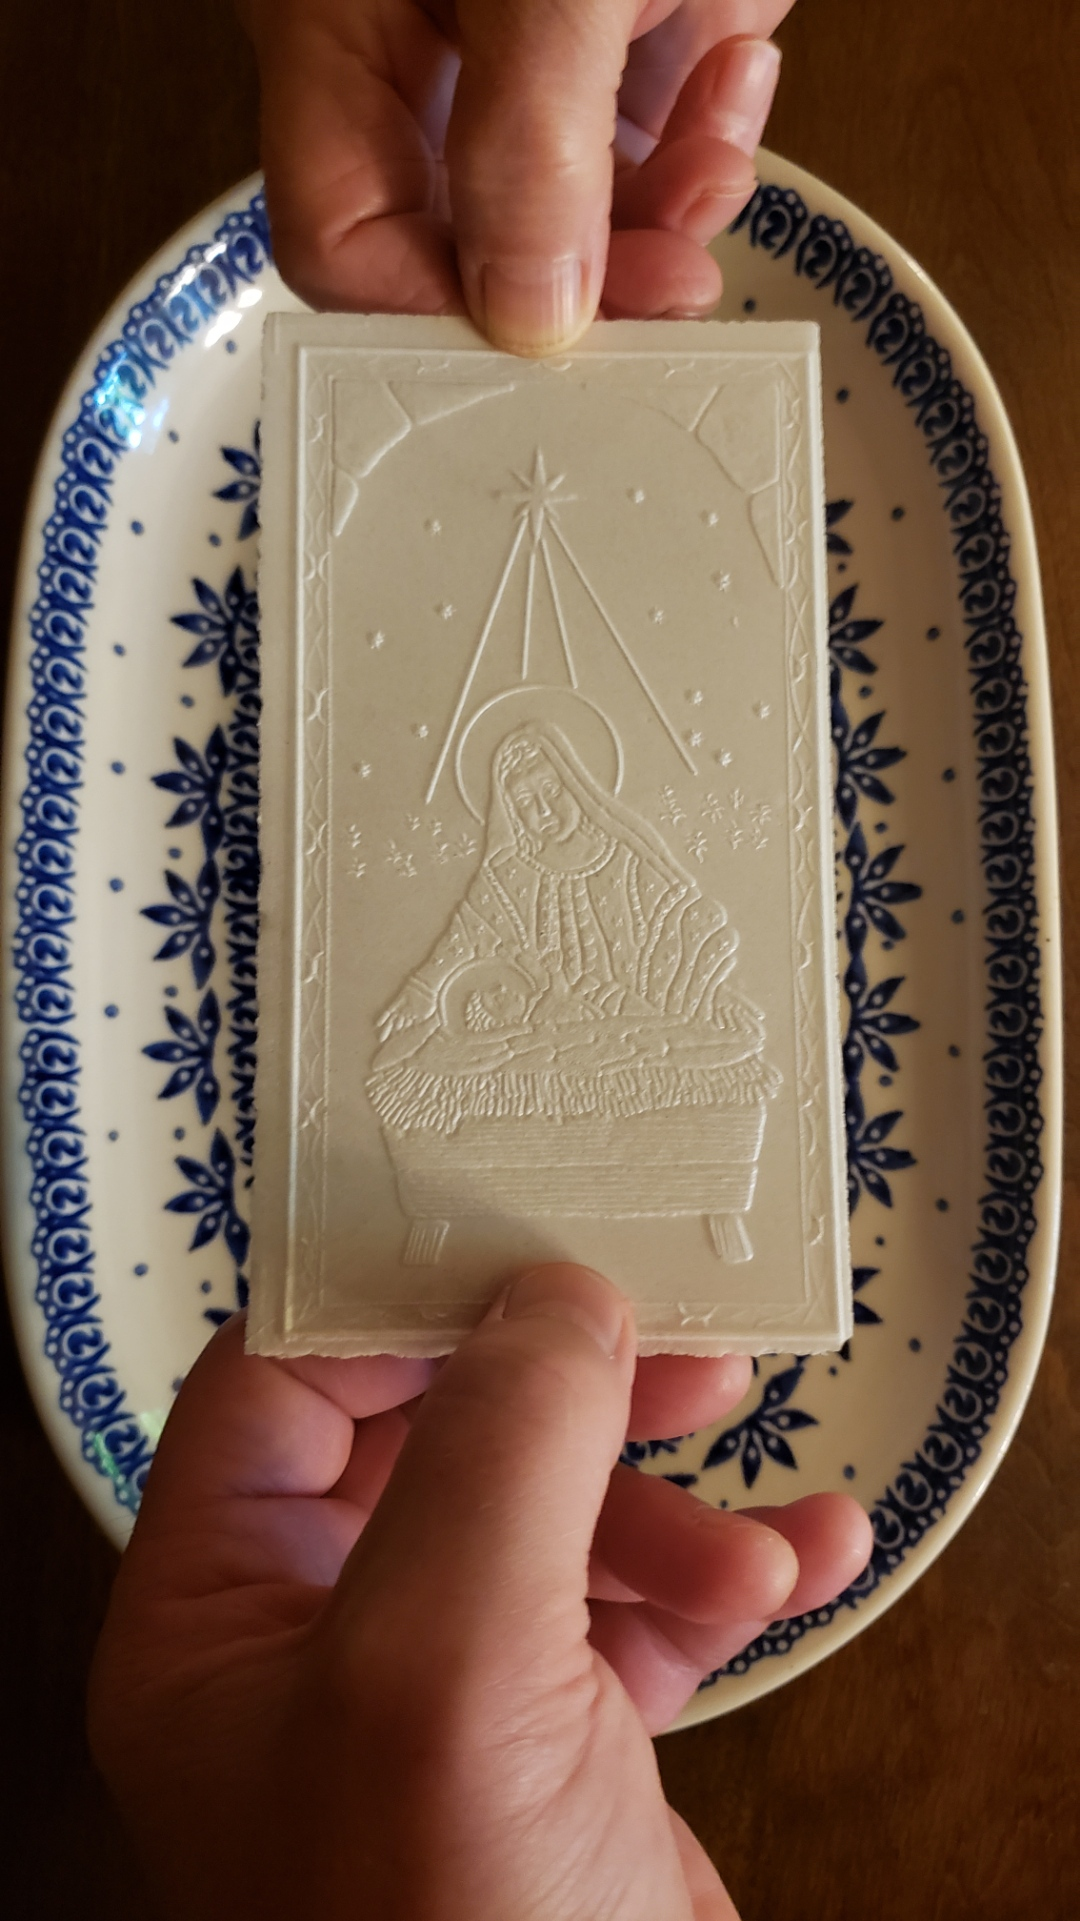 Opaletk wafer intricately depicting Mary and Jesus